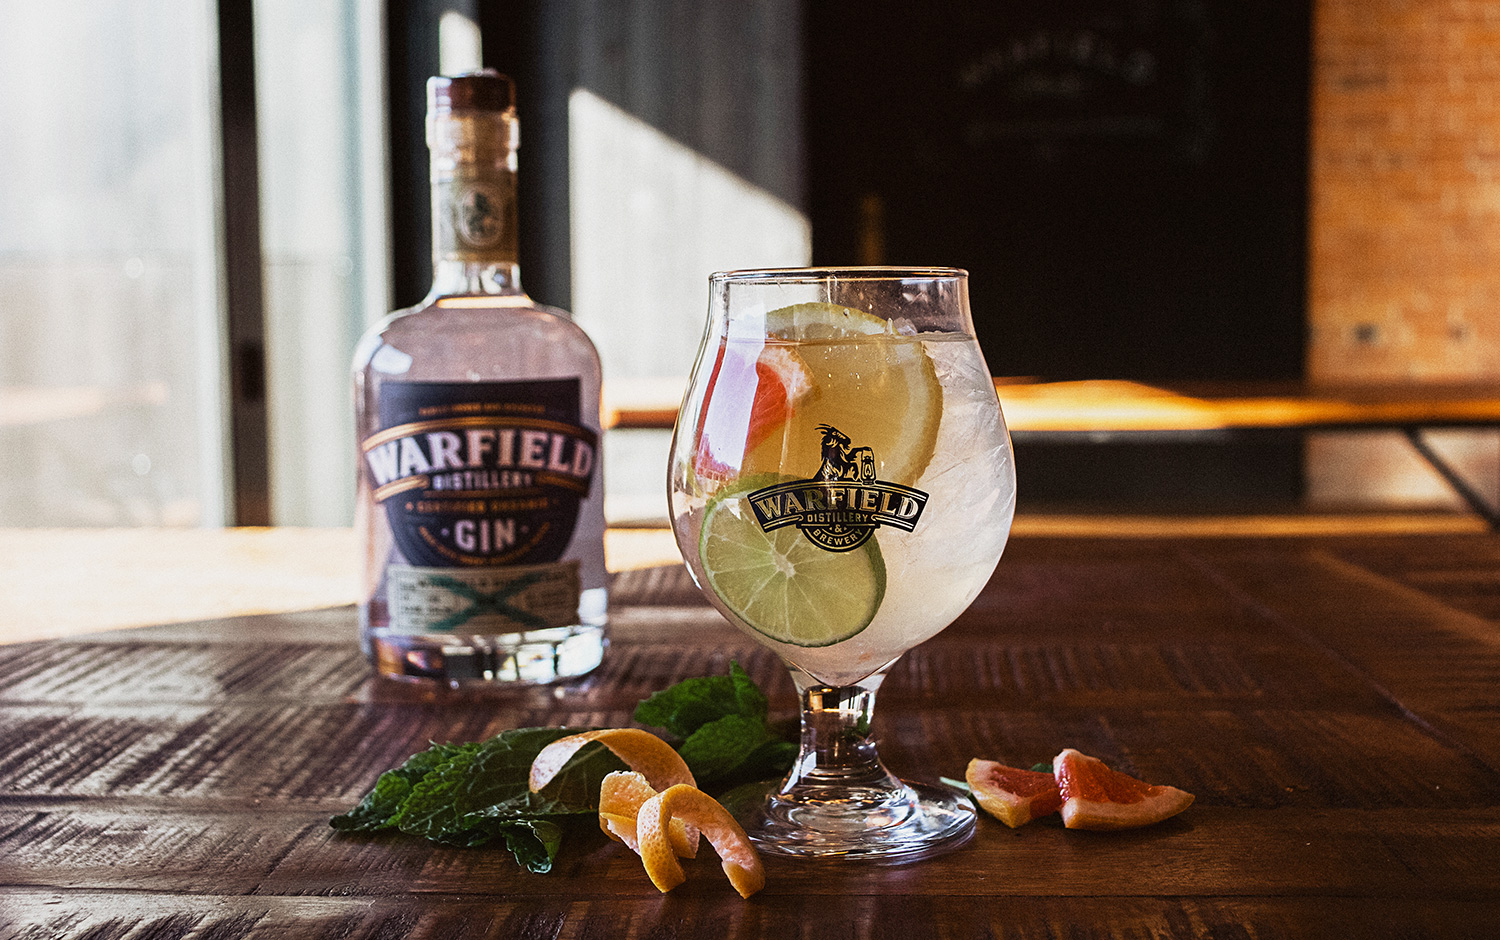 Warfield cocktail garnished with fruit made with Warfield gin in the background